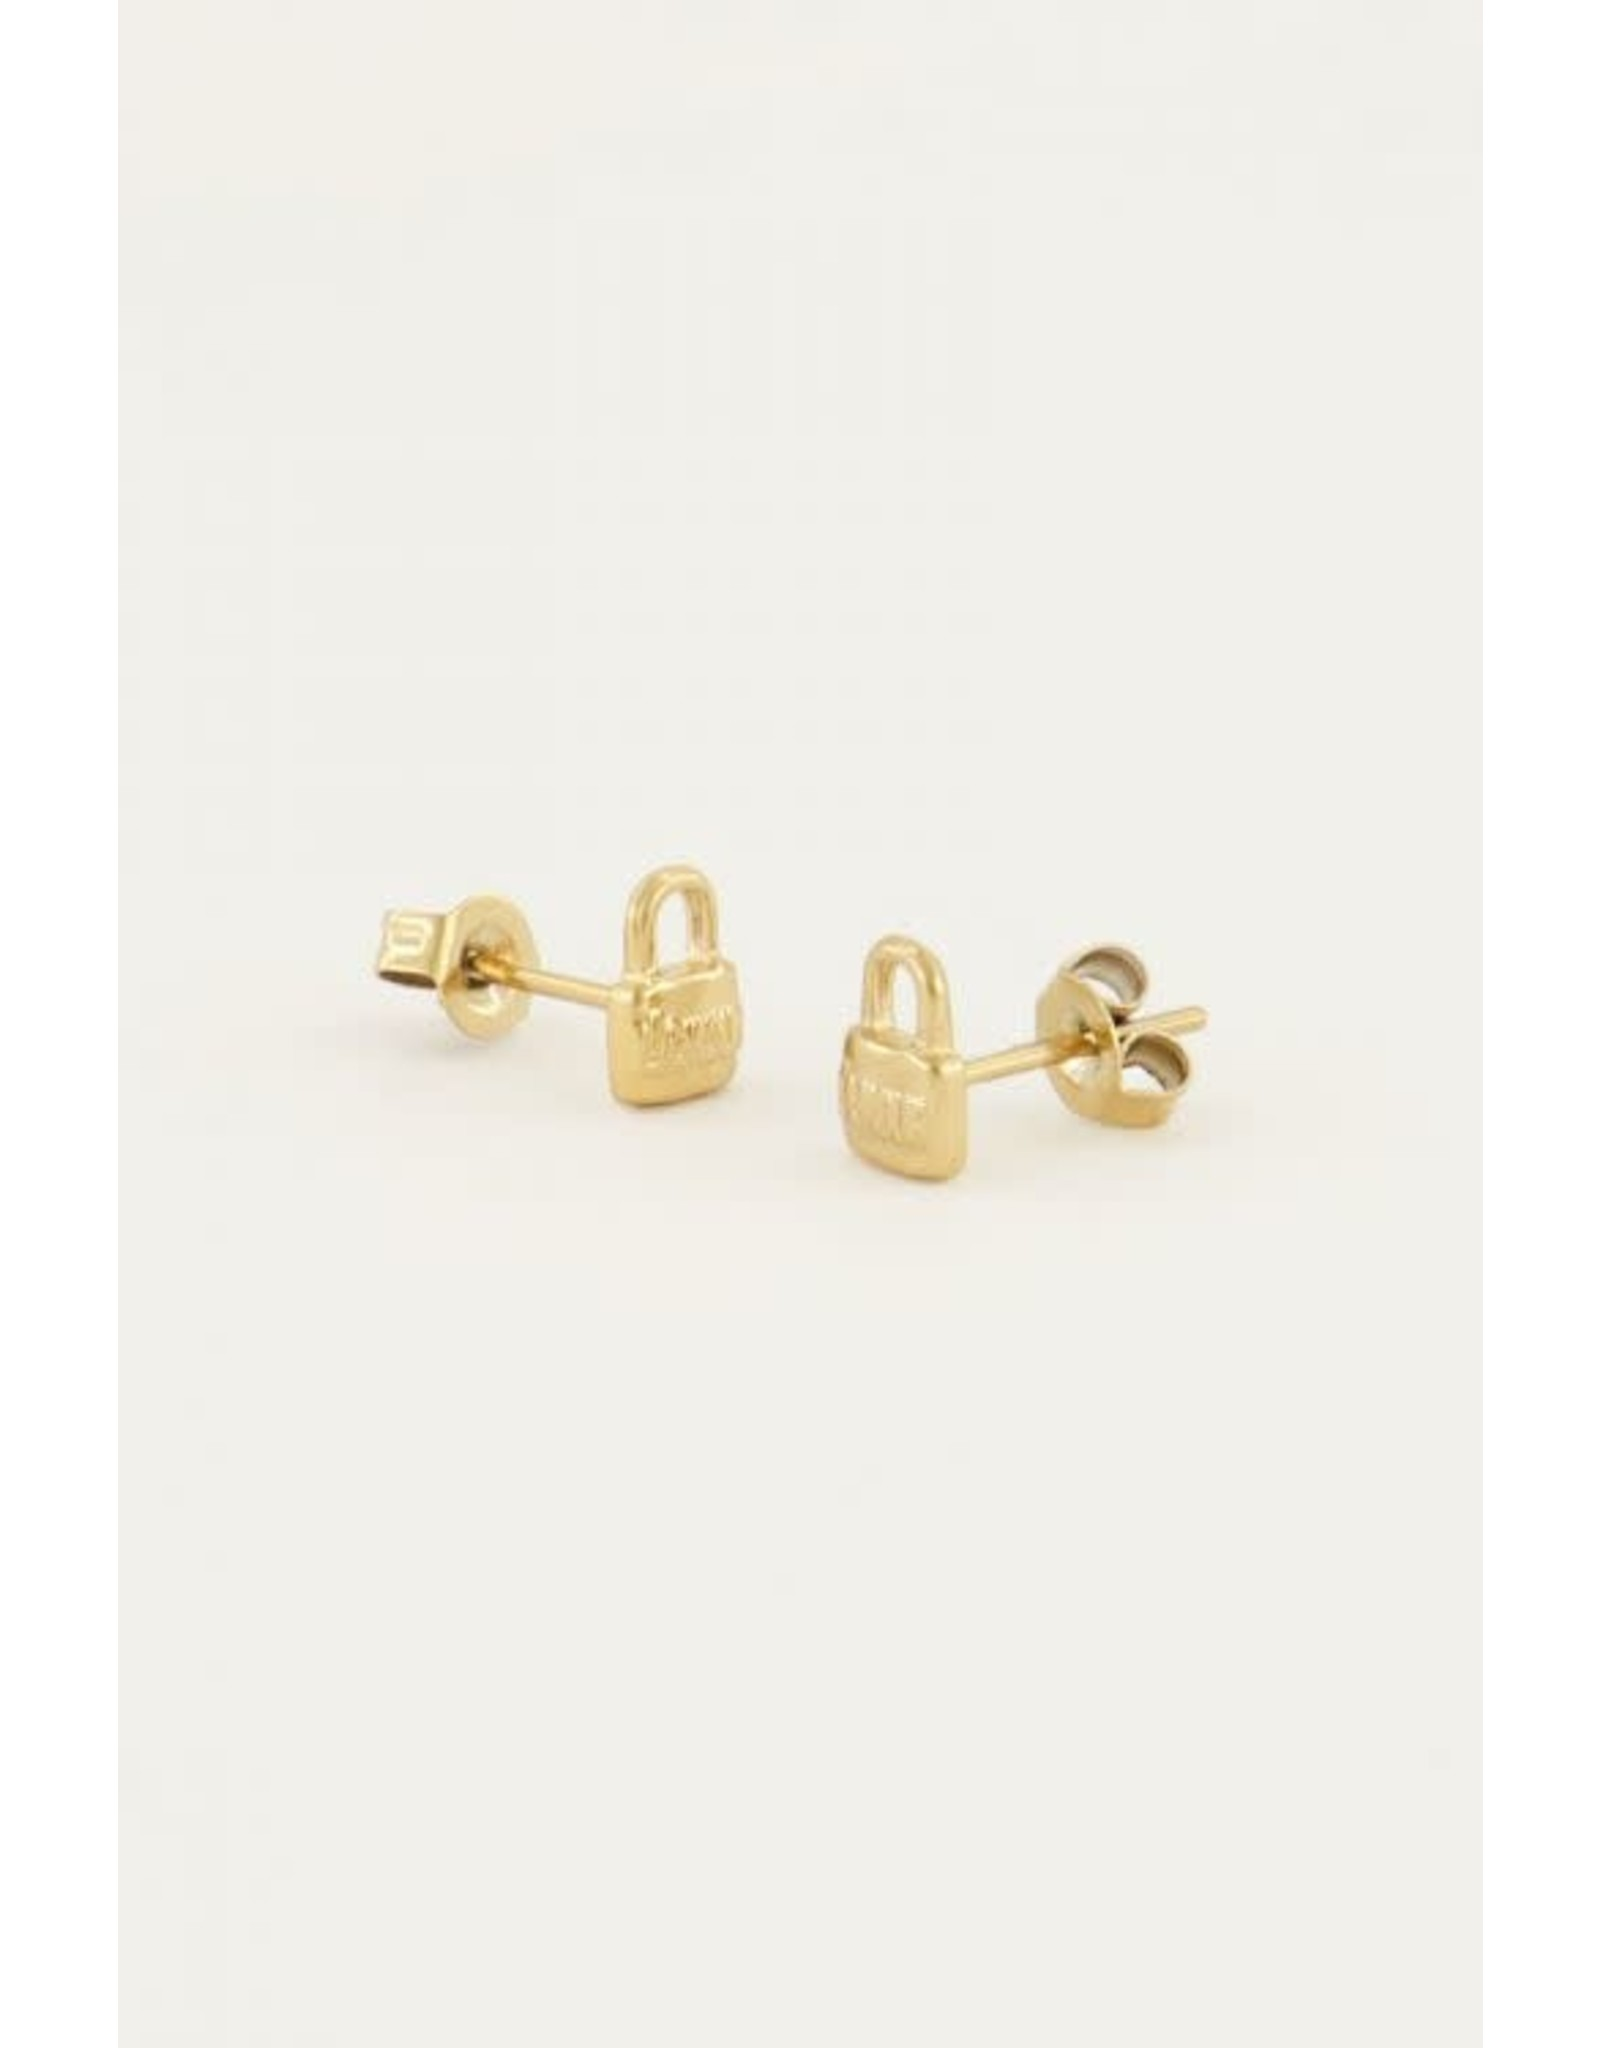 My Jewellery My Jewellery earstuds - love lock